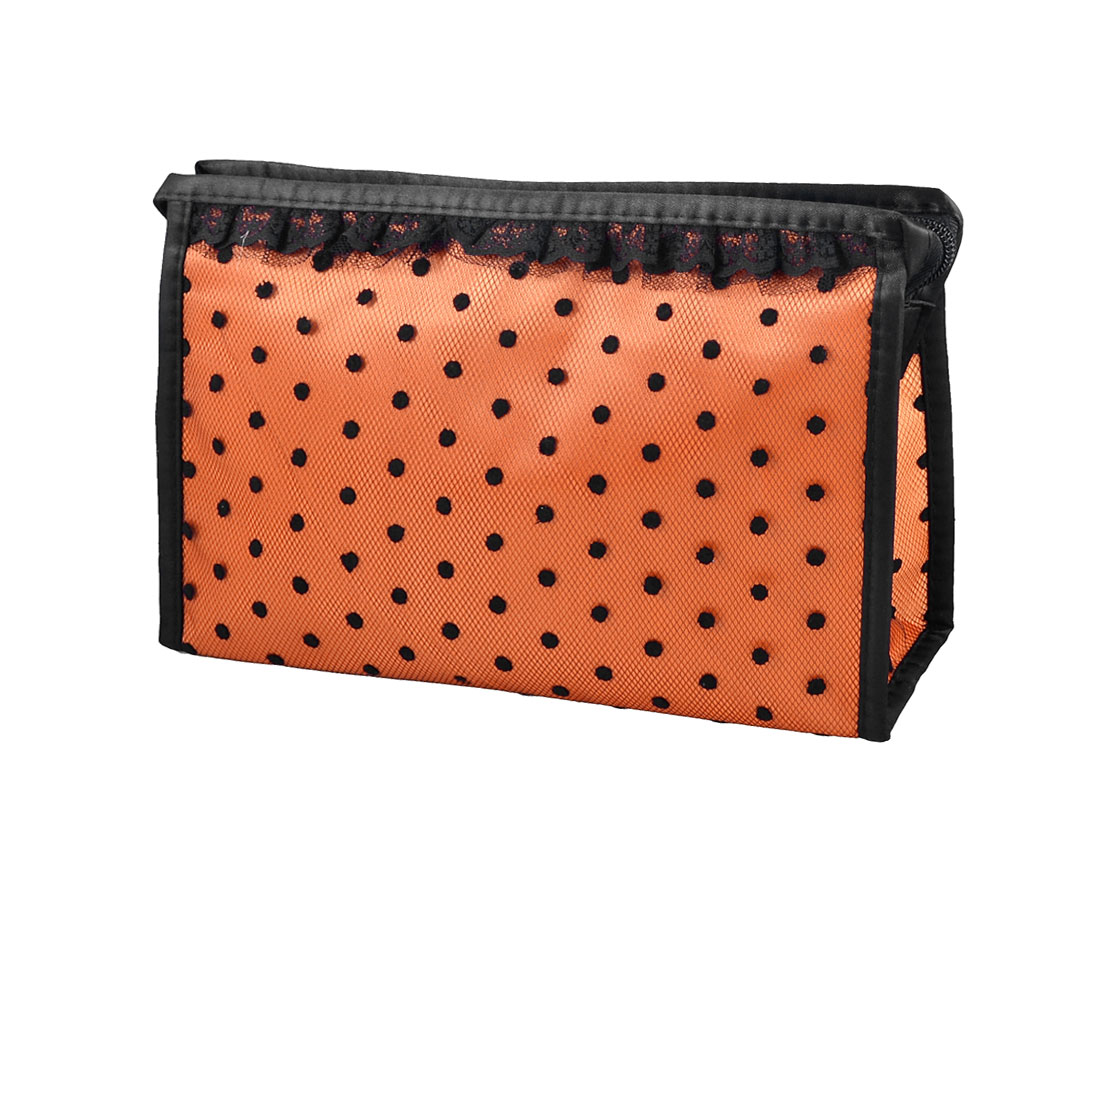 Orange Black Lace Dots Meshy Zippered Rectangular Makeup Cosmetic Bag Pouch Case